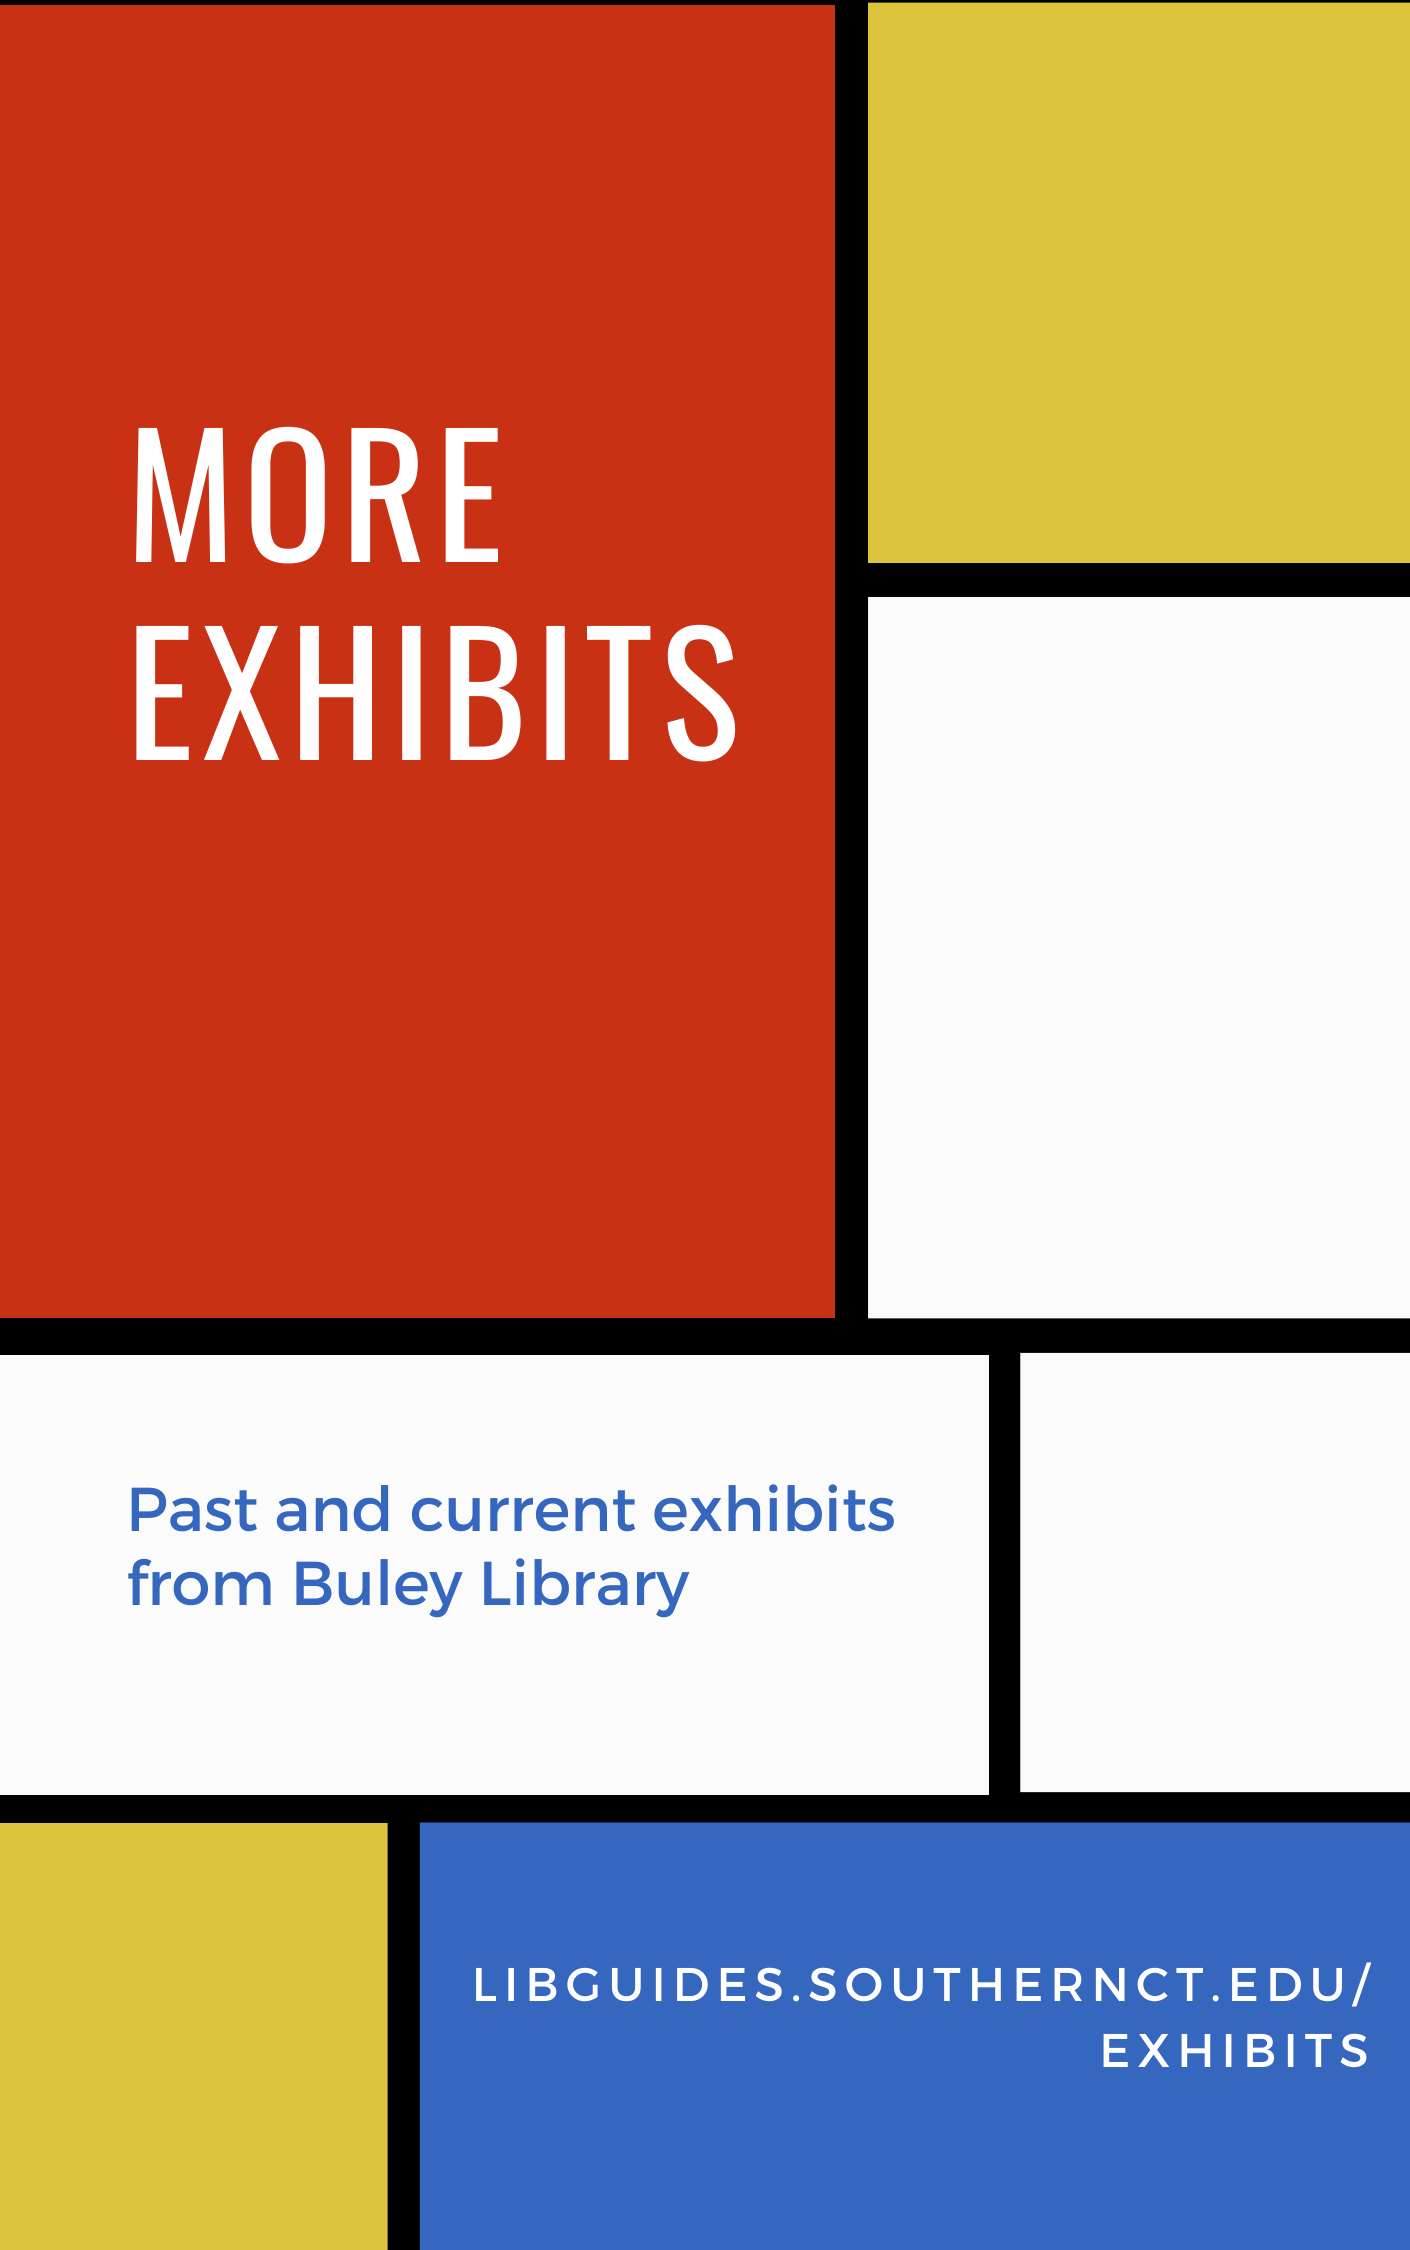 Click for more exhibits, past and present